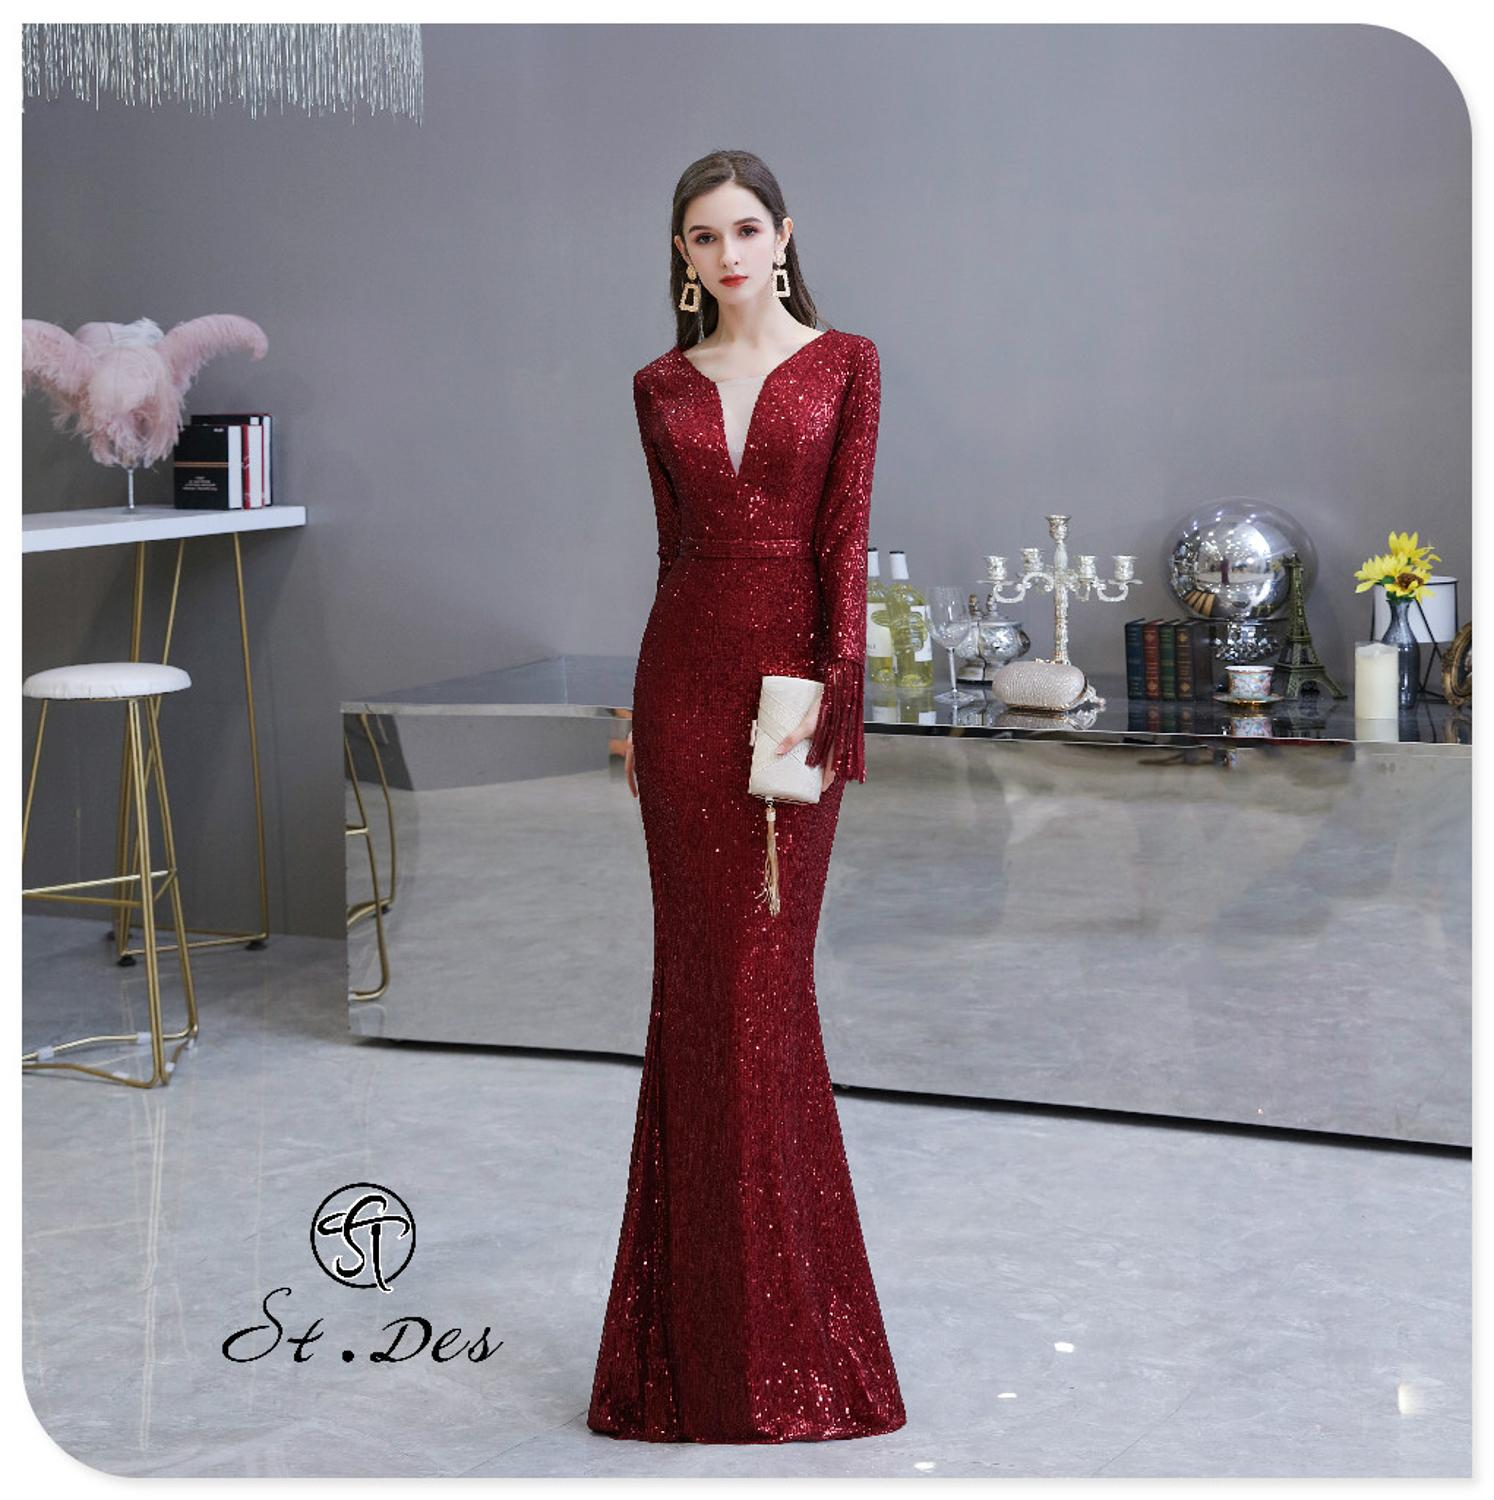 S.T.DES Evening Dress 2020 New Arrival Burgundy Beading Mermaid V-Neck Wine Long Sleeve Floor Length Party Dress Dinner Gowns